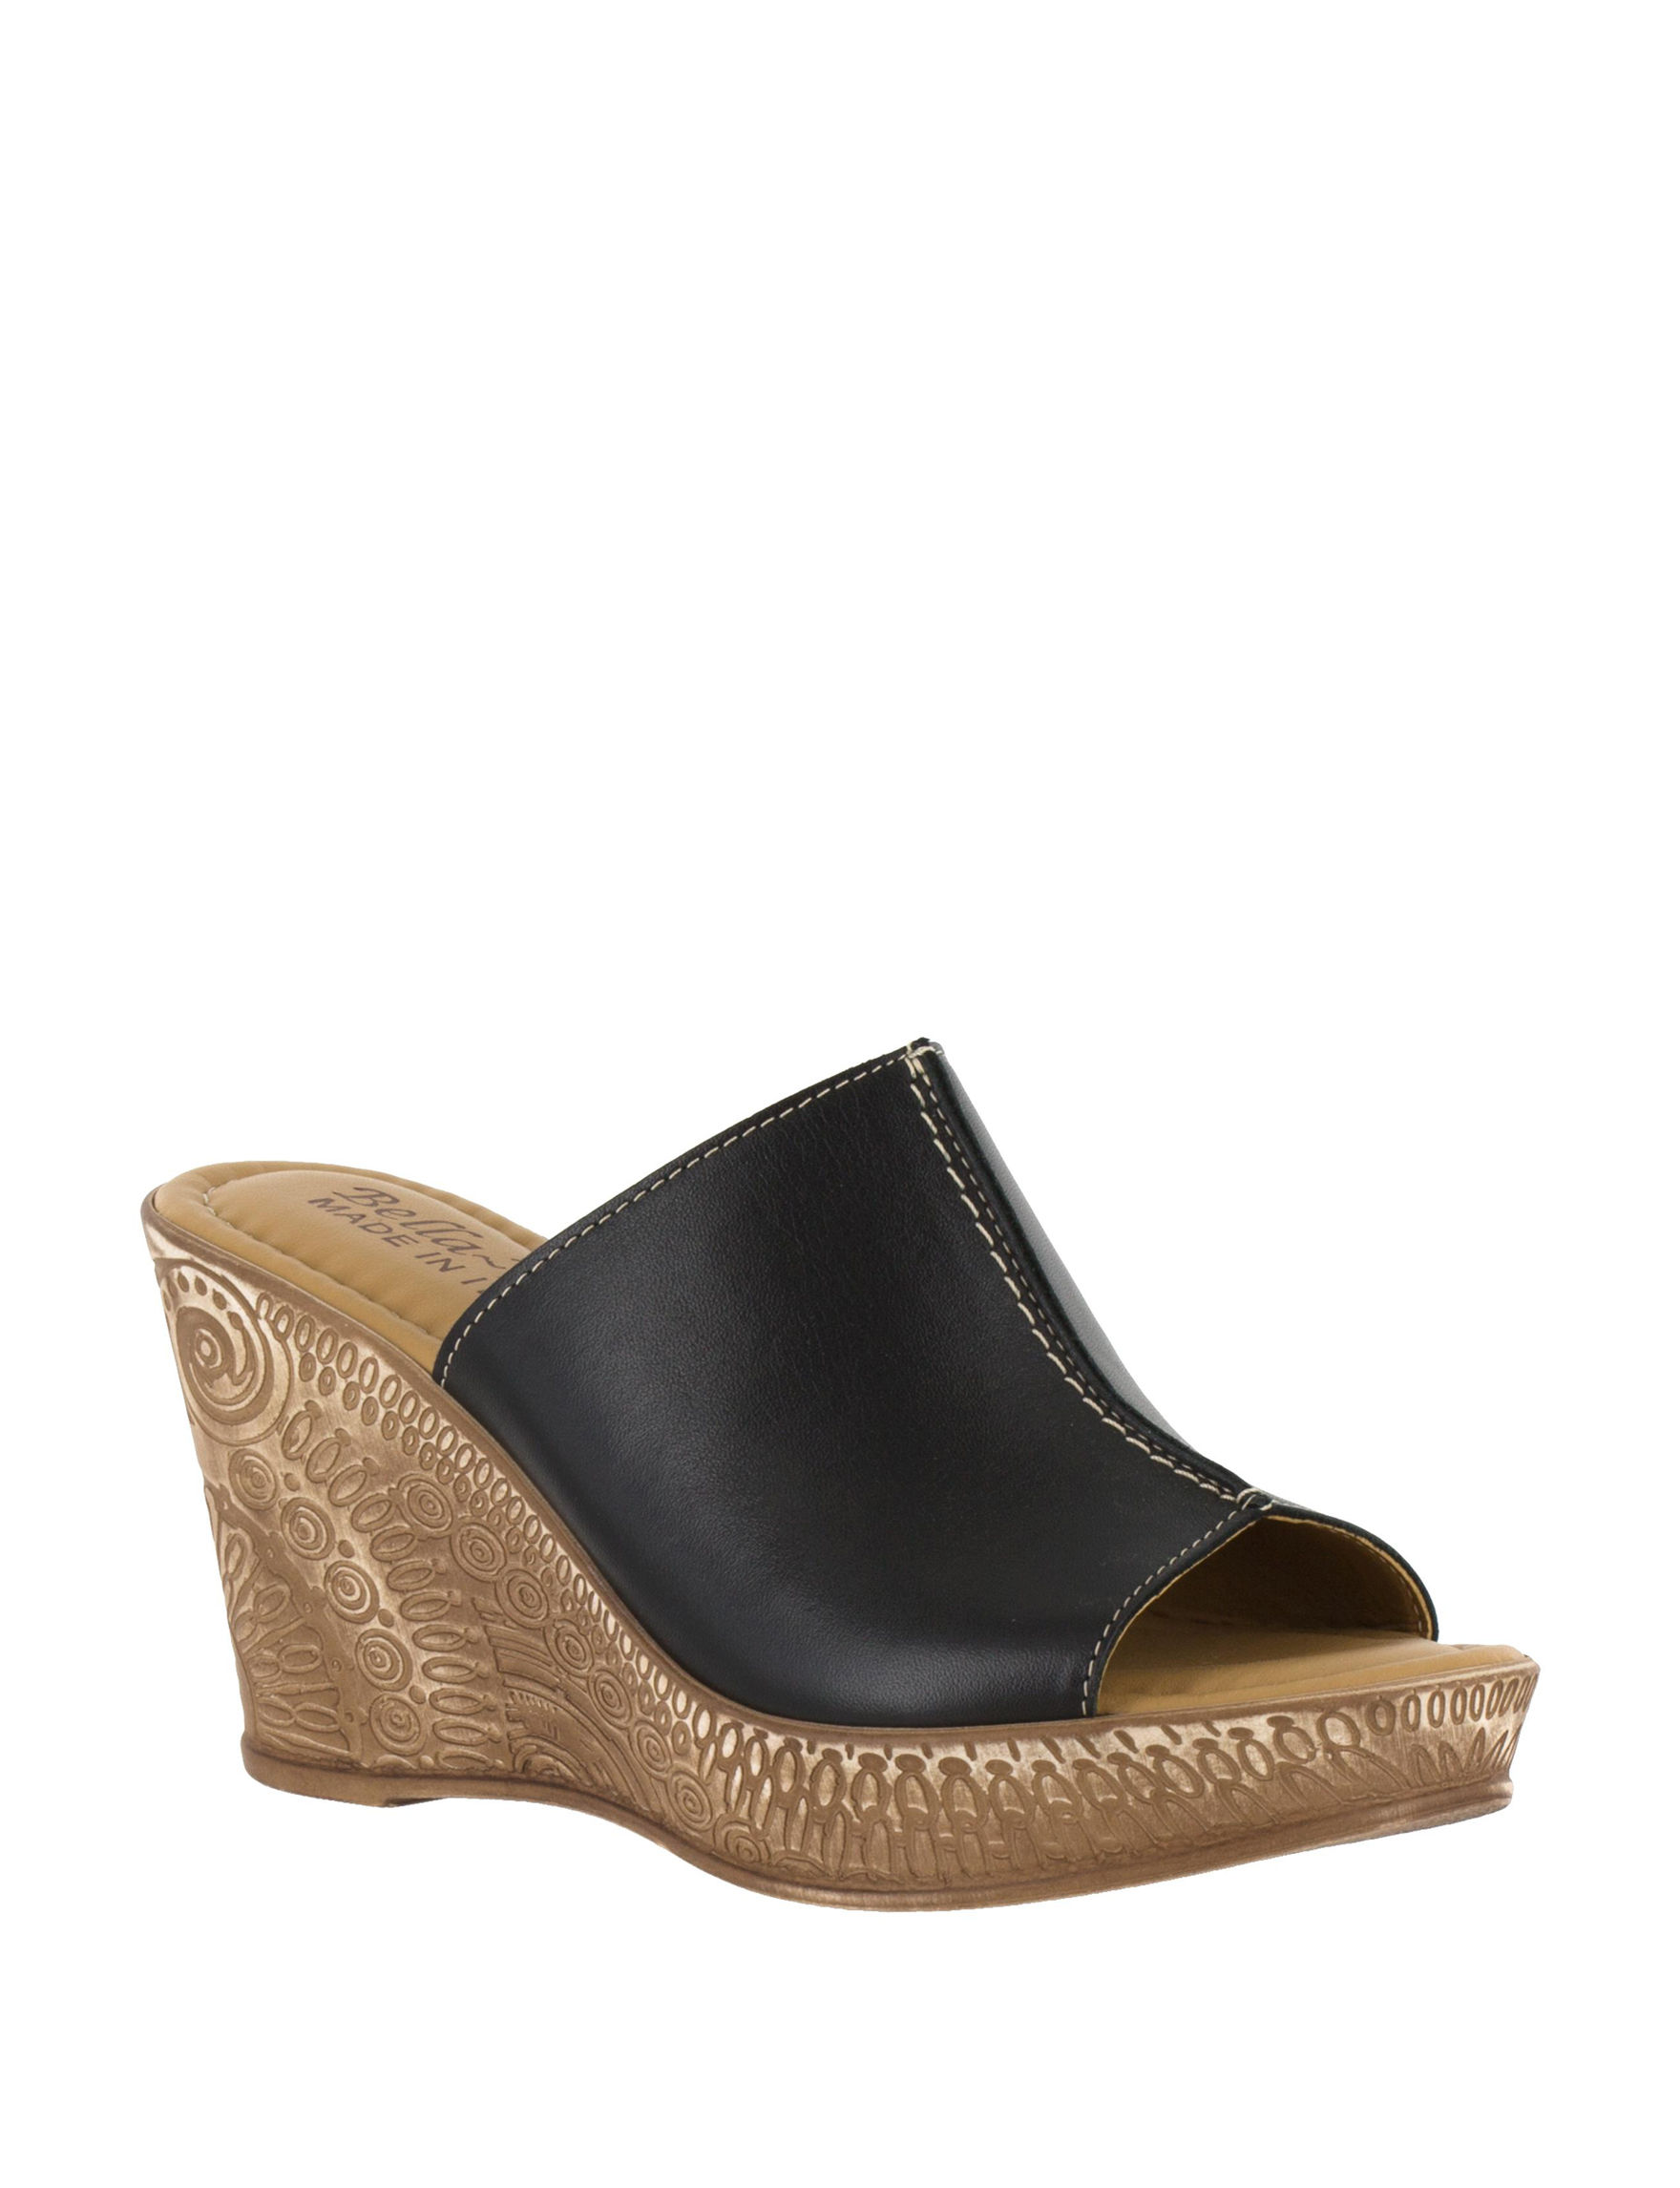 Bella Vita Black Wedge Sandals